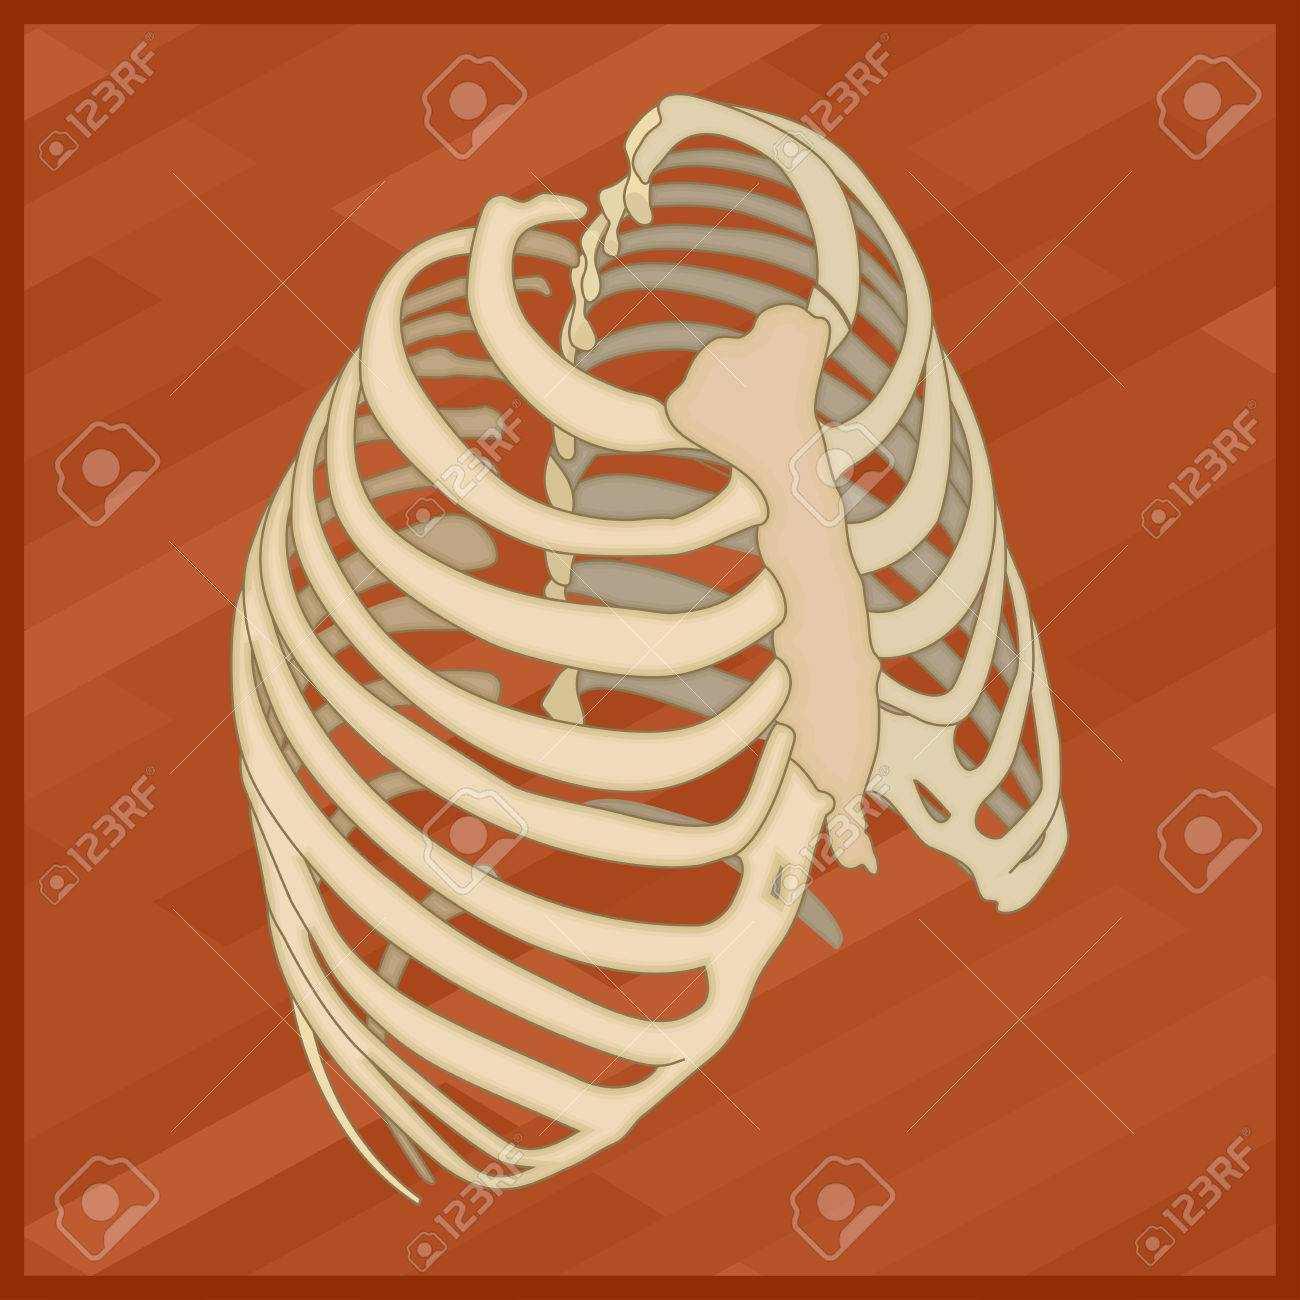 Human thorax flat isometric icon protextora bone rib cage or protextora bone rib cage or internal organs of thorax isometric ccuart Gallery